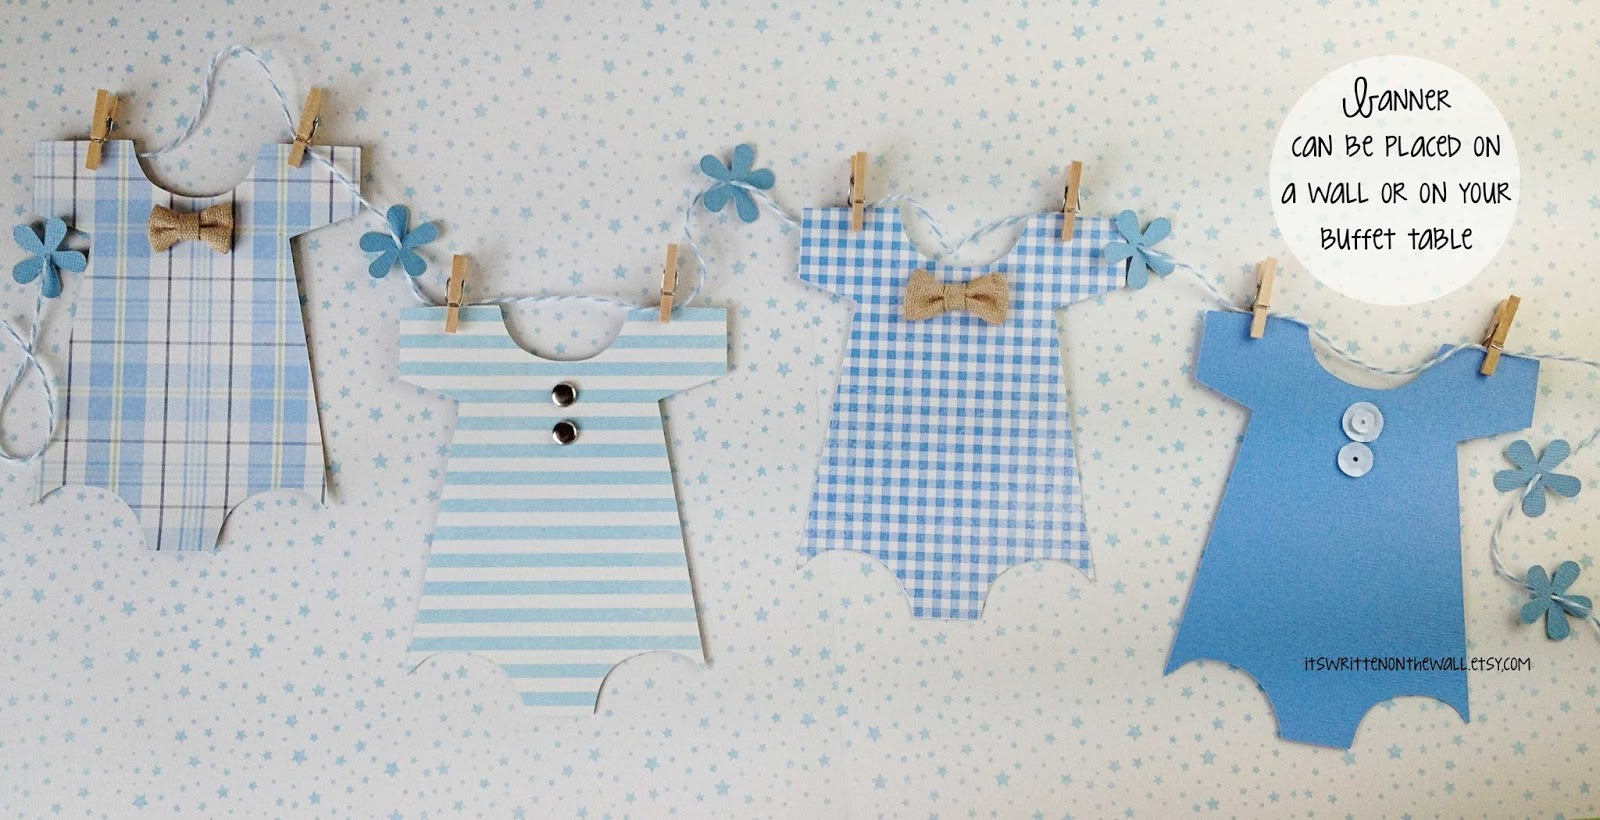 Its written on the wall looking for cute baby shower decorations looking for cute baby shower decorations see our onesies banners for both boys and girls amipublicfo Gallery